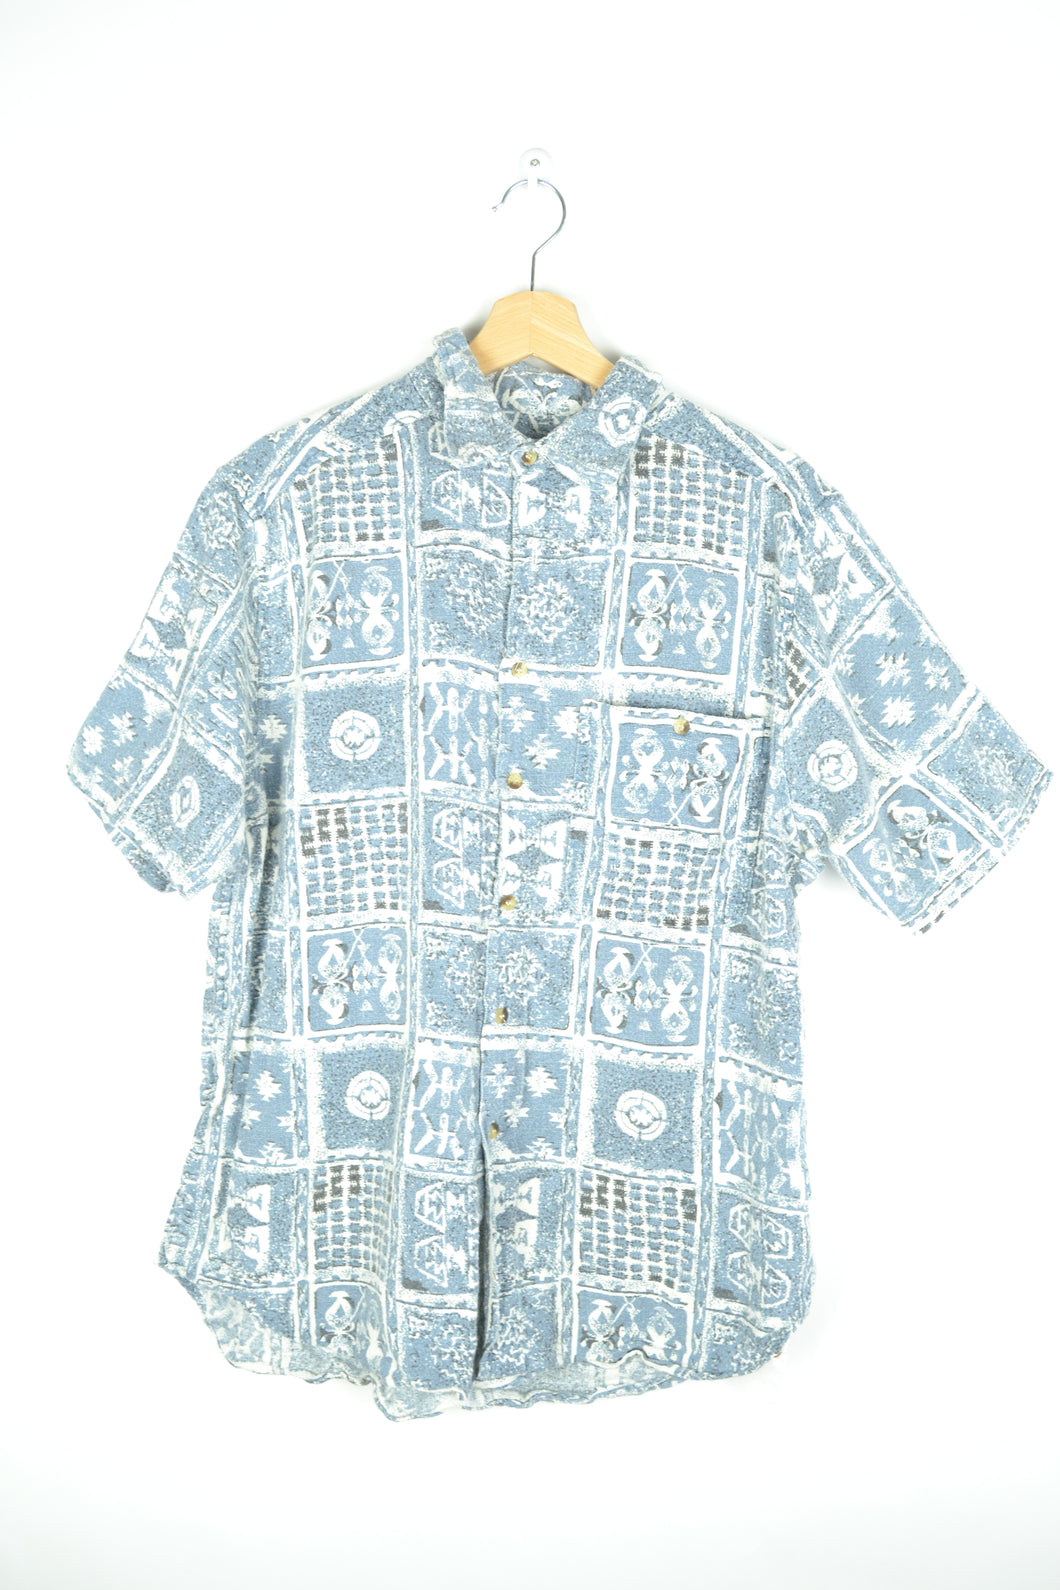 70s Abstract Patterned Blue Summer Shirt M